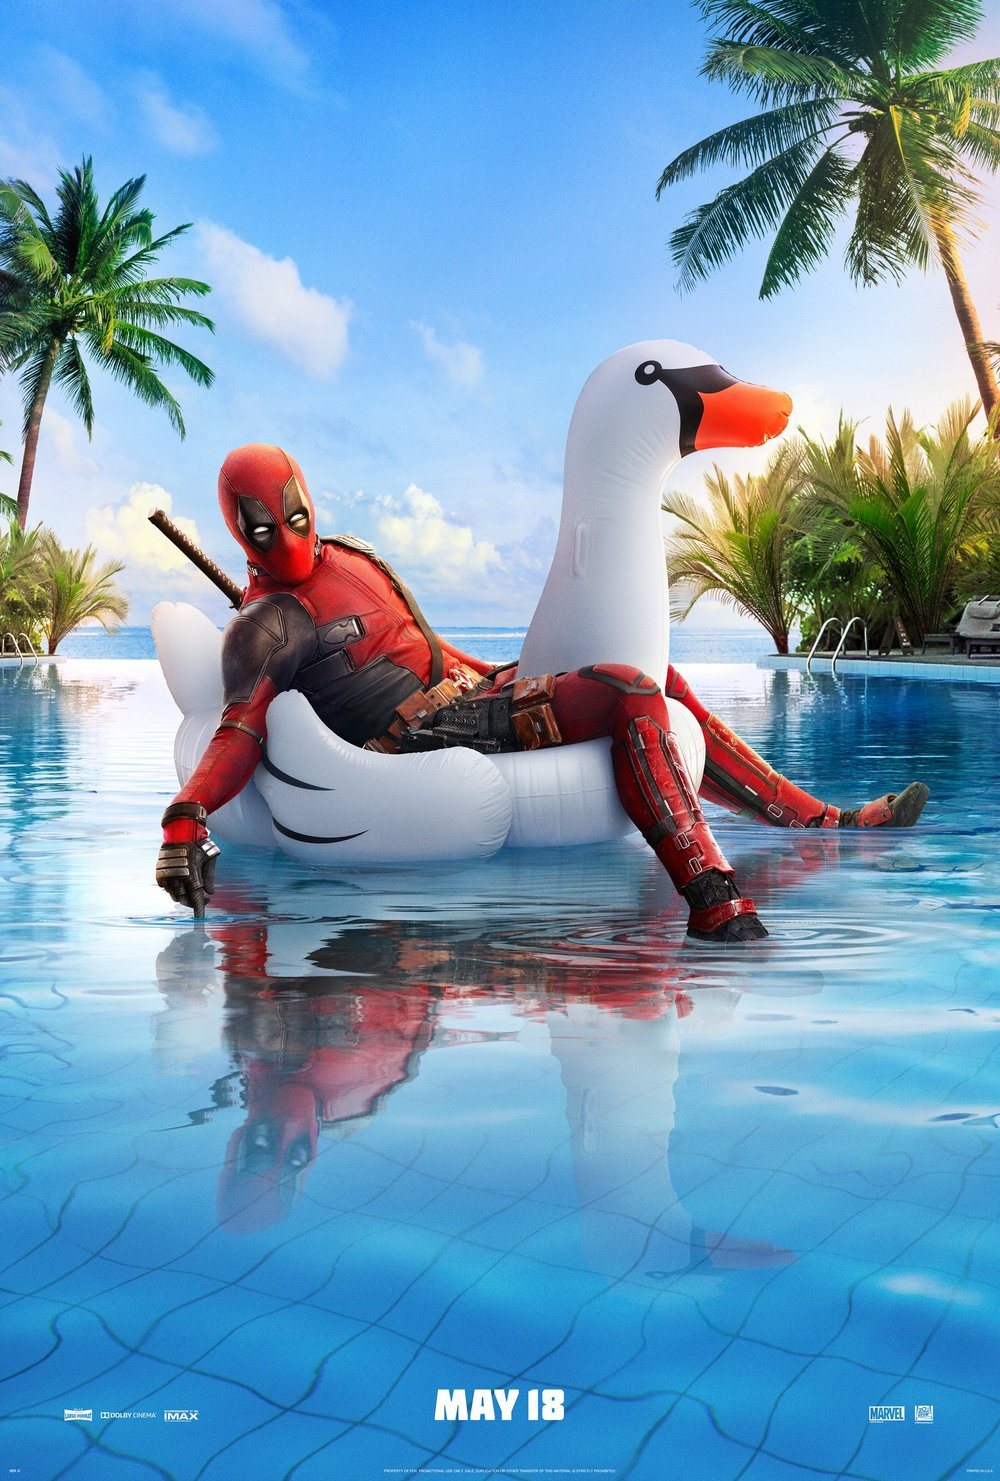 2-new-deadpool-2-posters-features-peter-and-deadpool-relaxing-on-an-inflated-duck-in-a-pool